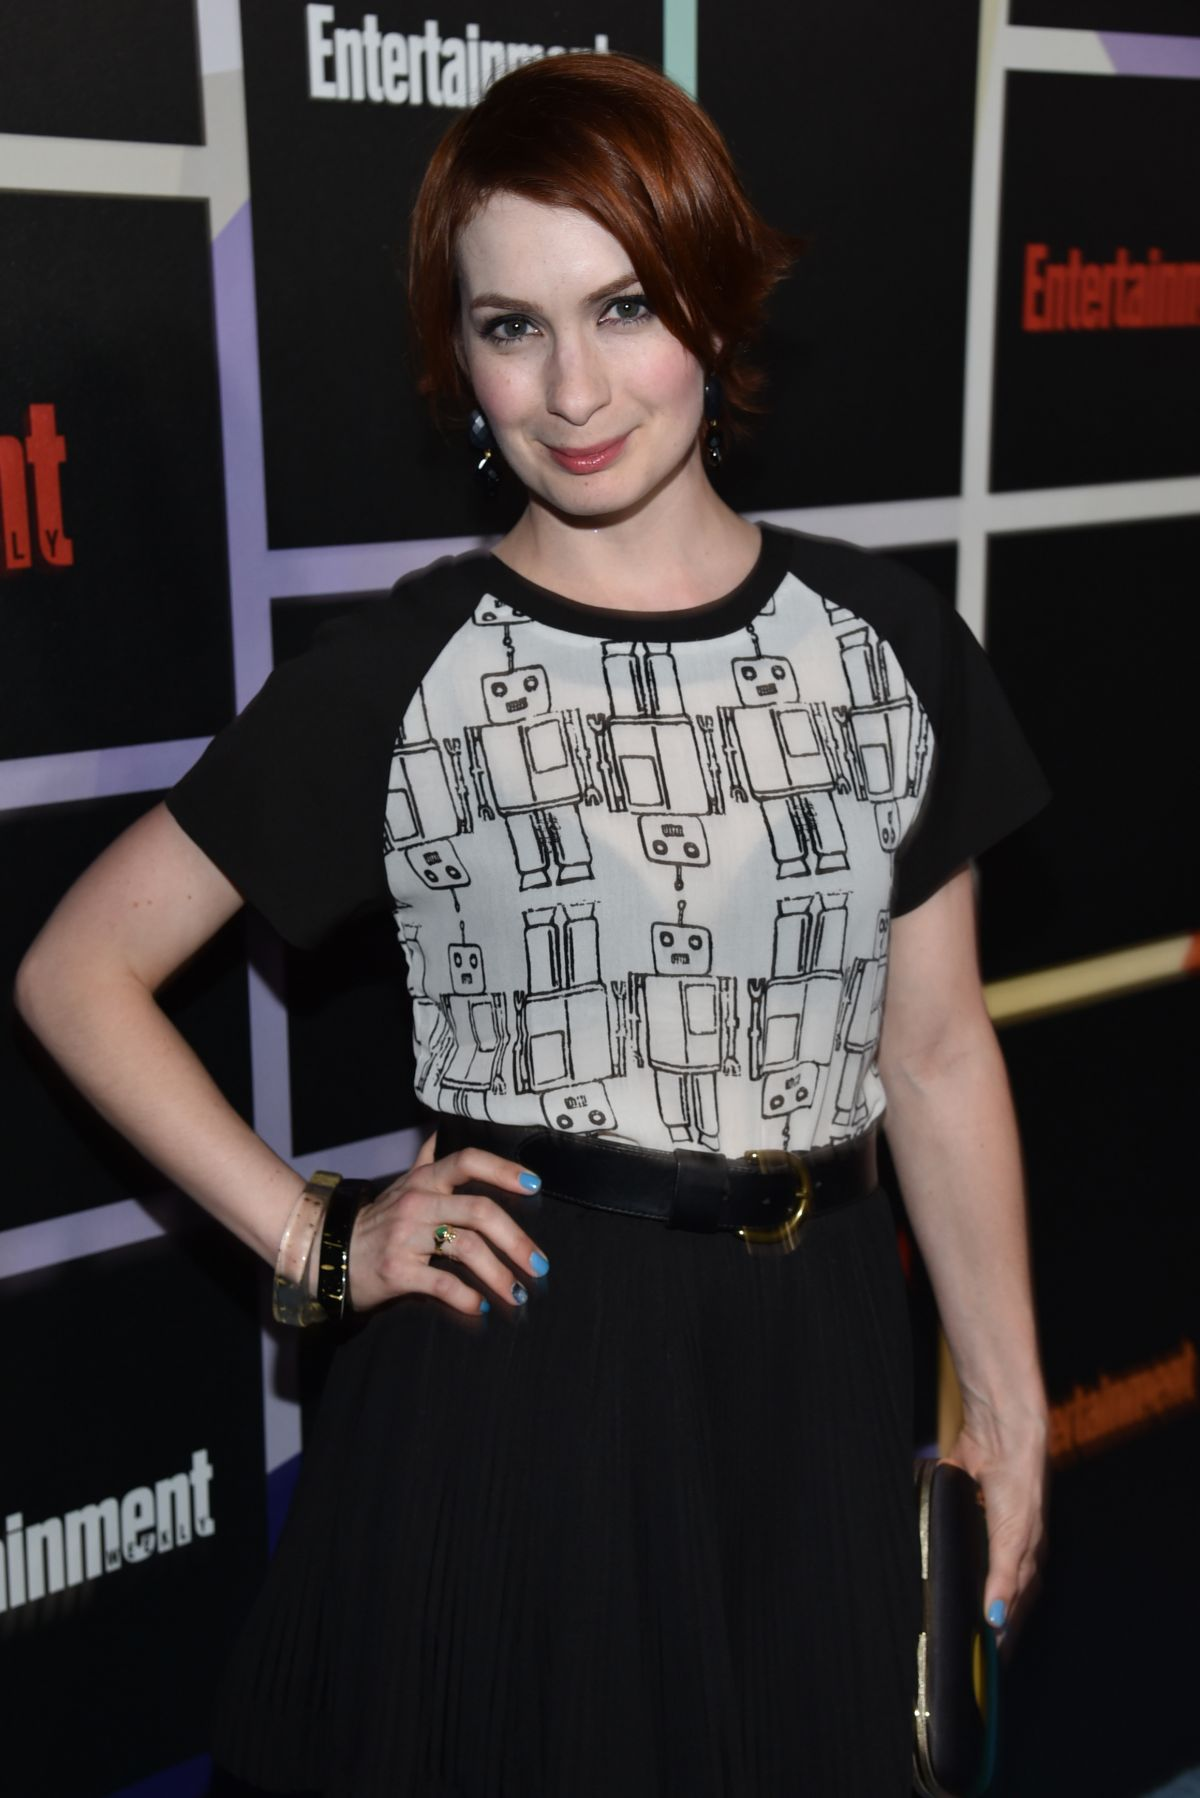 FELICIA DAY at Entertainment Weekly's Comic-con Celebration